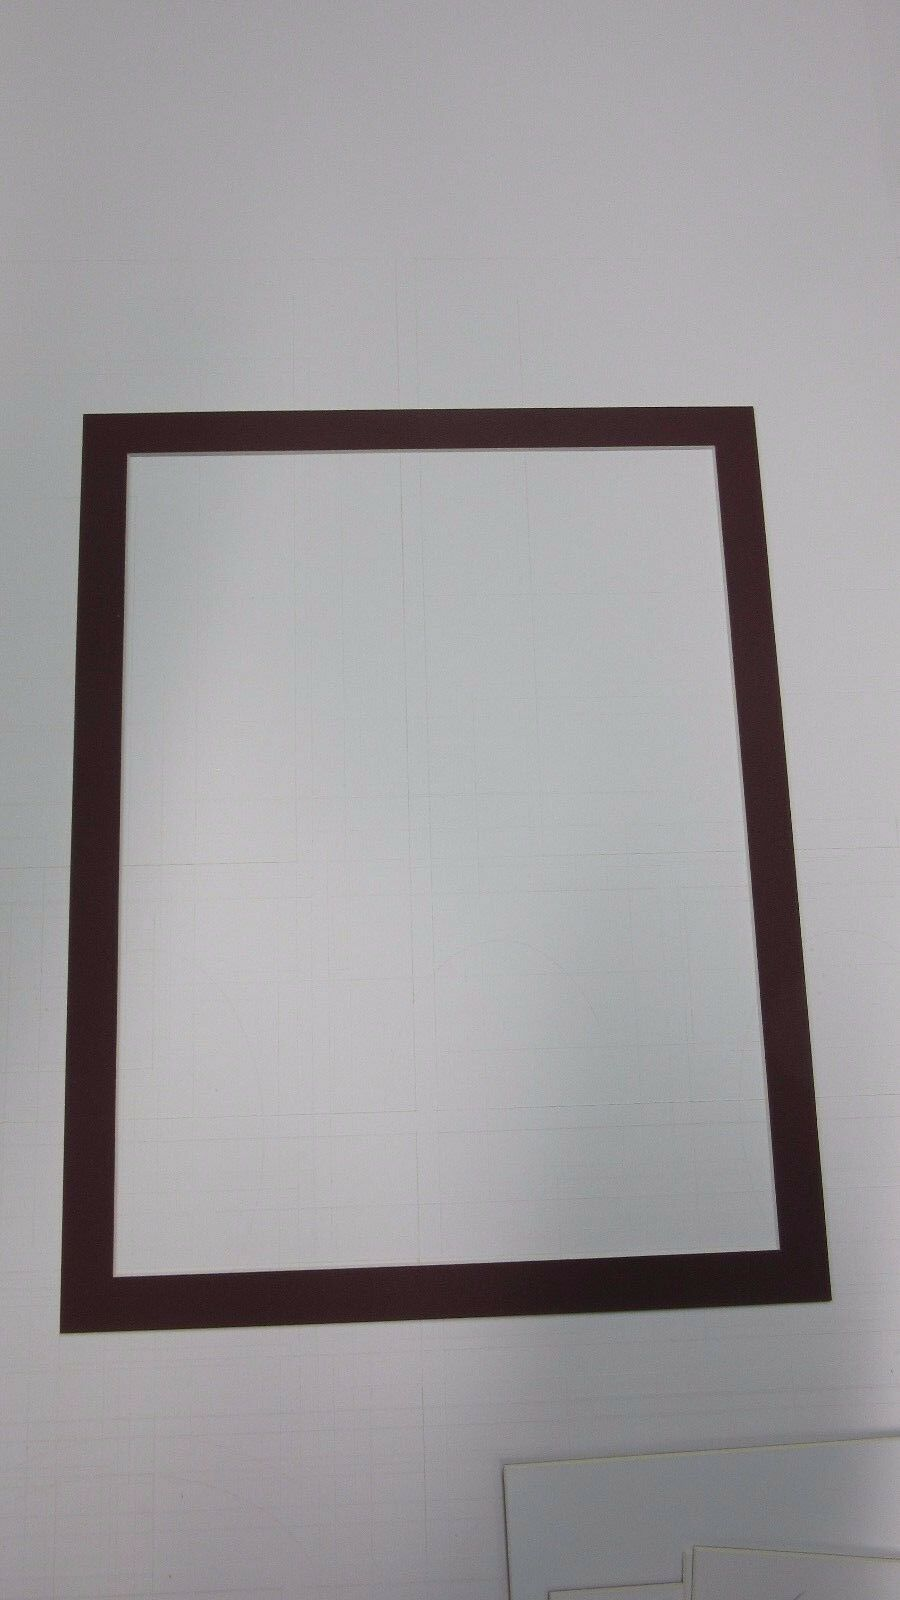 Picture framing mats 11x14 for 10x13 photo or painting maroon picture 1 of 2 jeuxipadfo Gallery